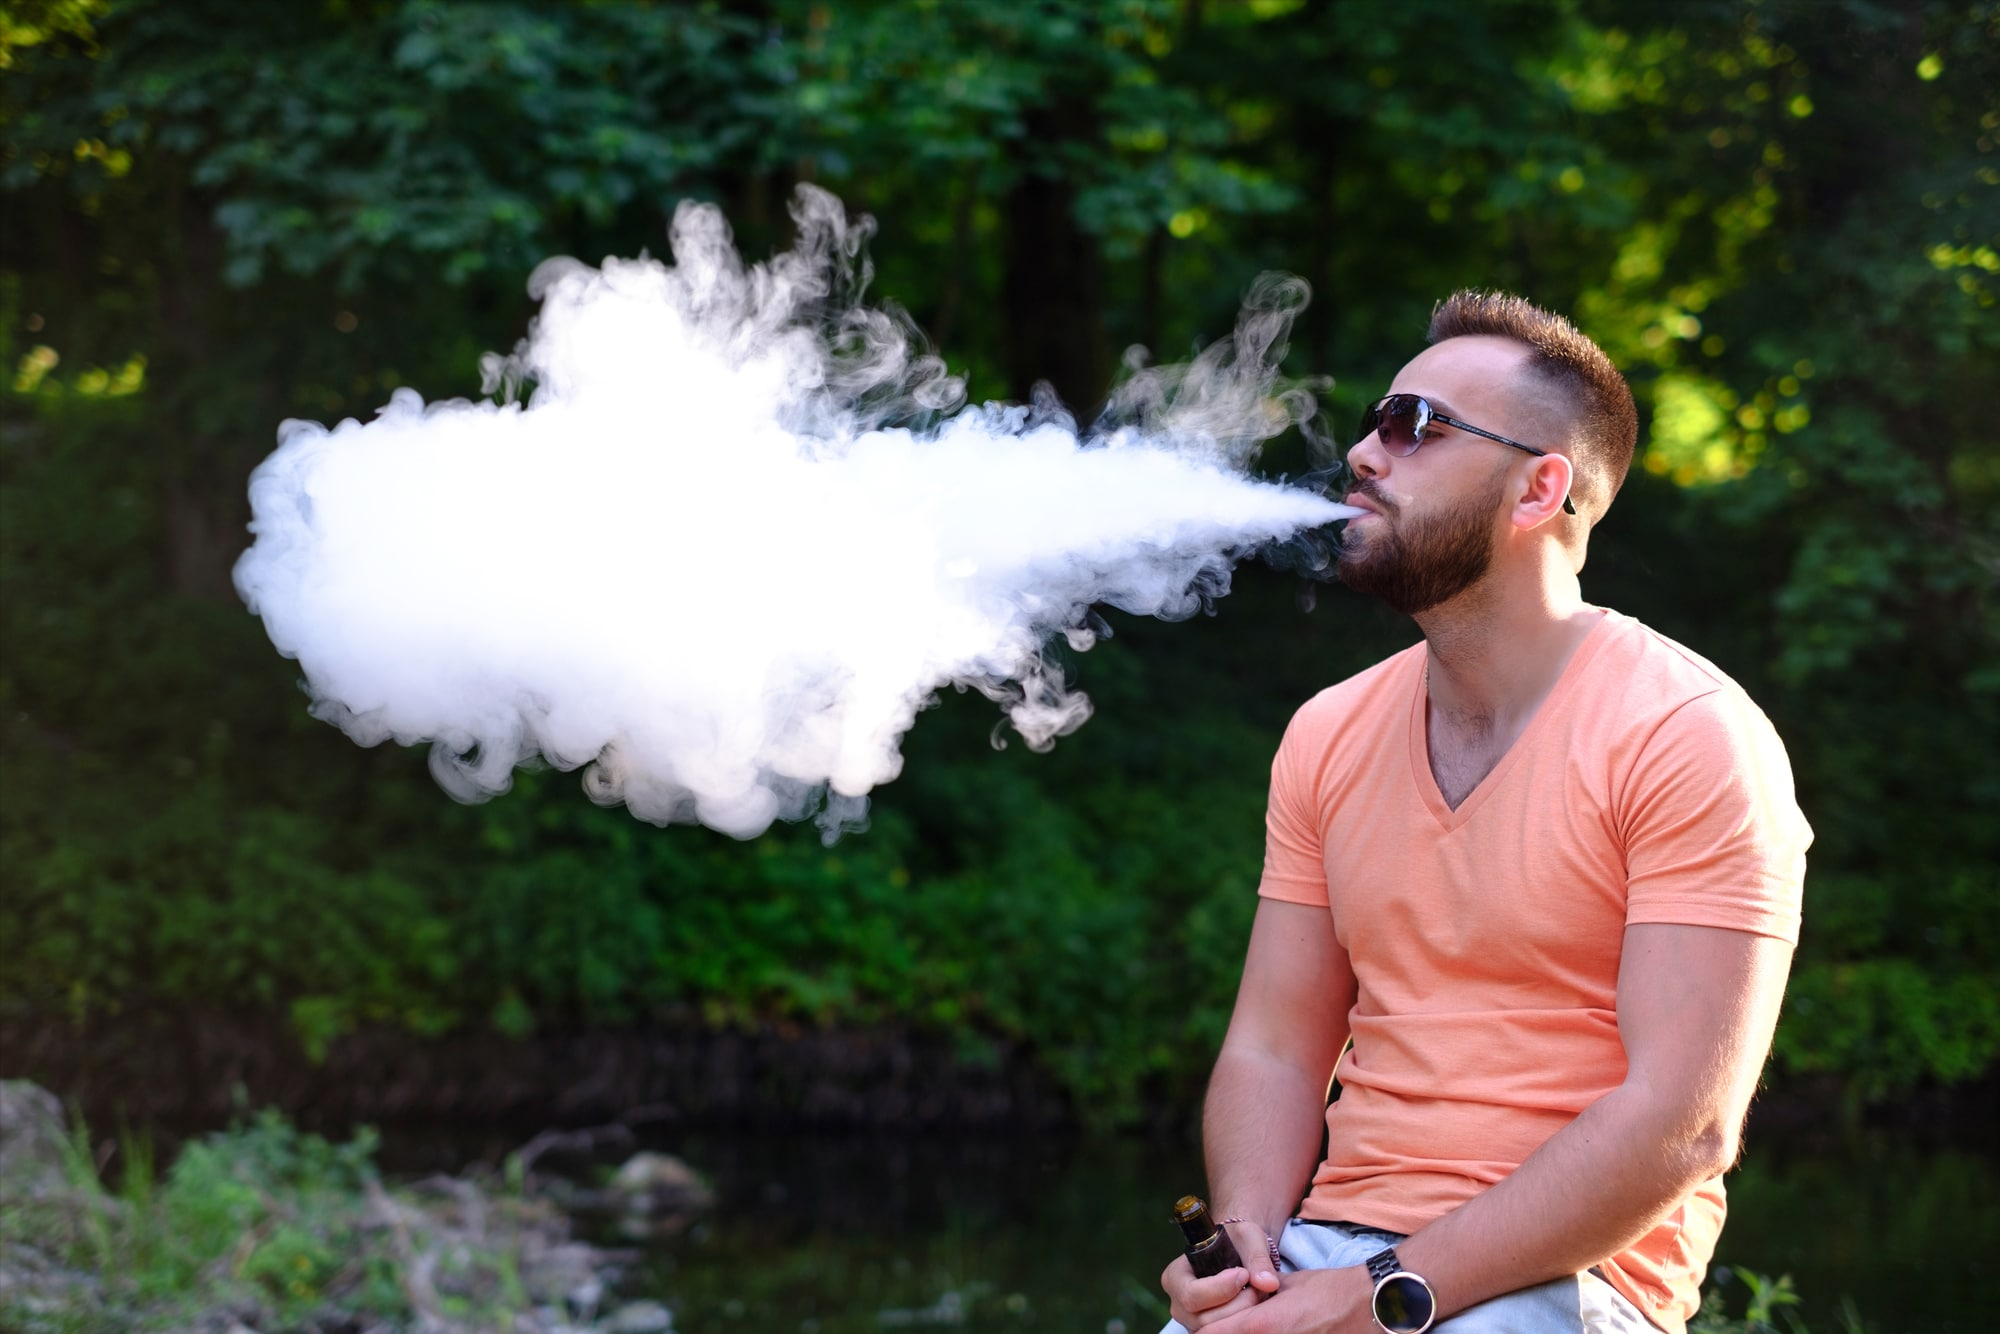 Best Dry Herb Vaporizer Reviews UK 2019 - Top 9 Comparison